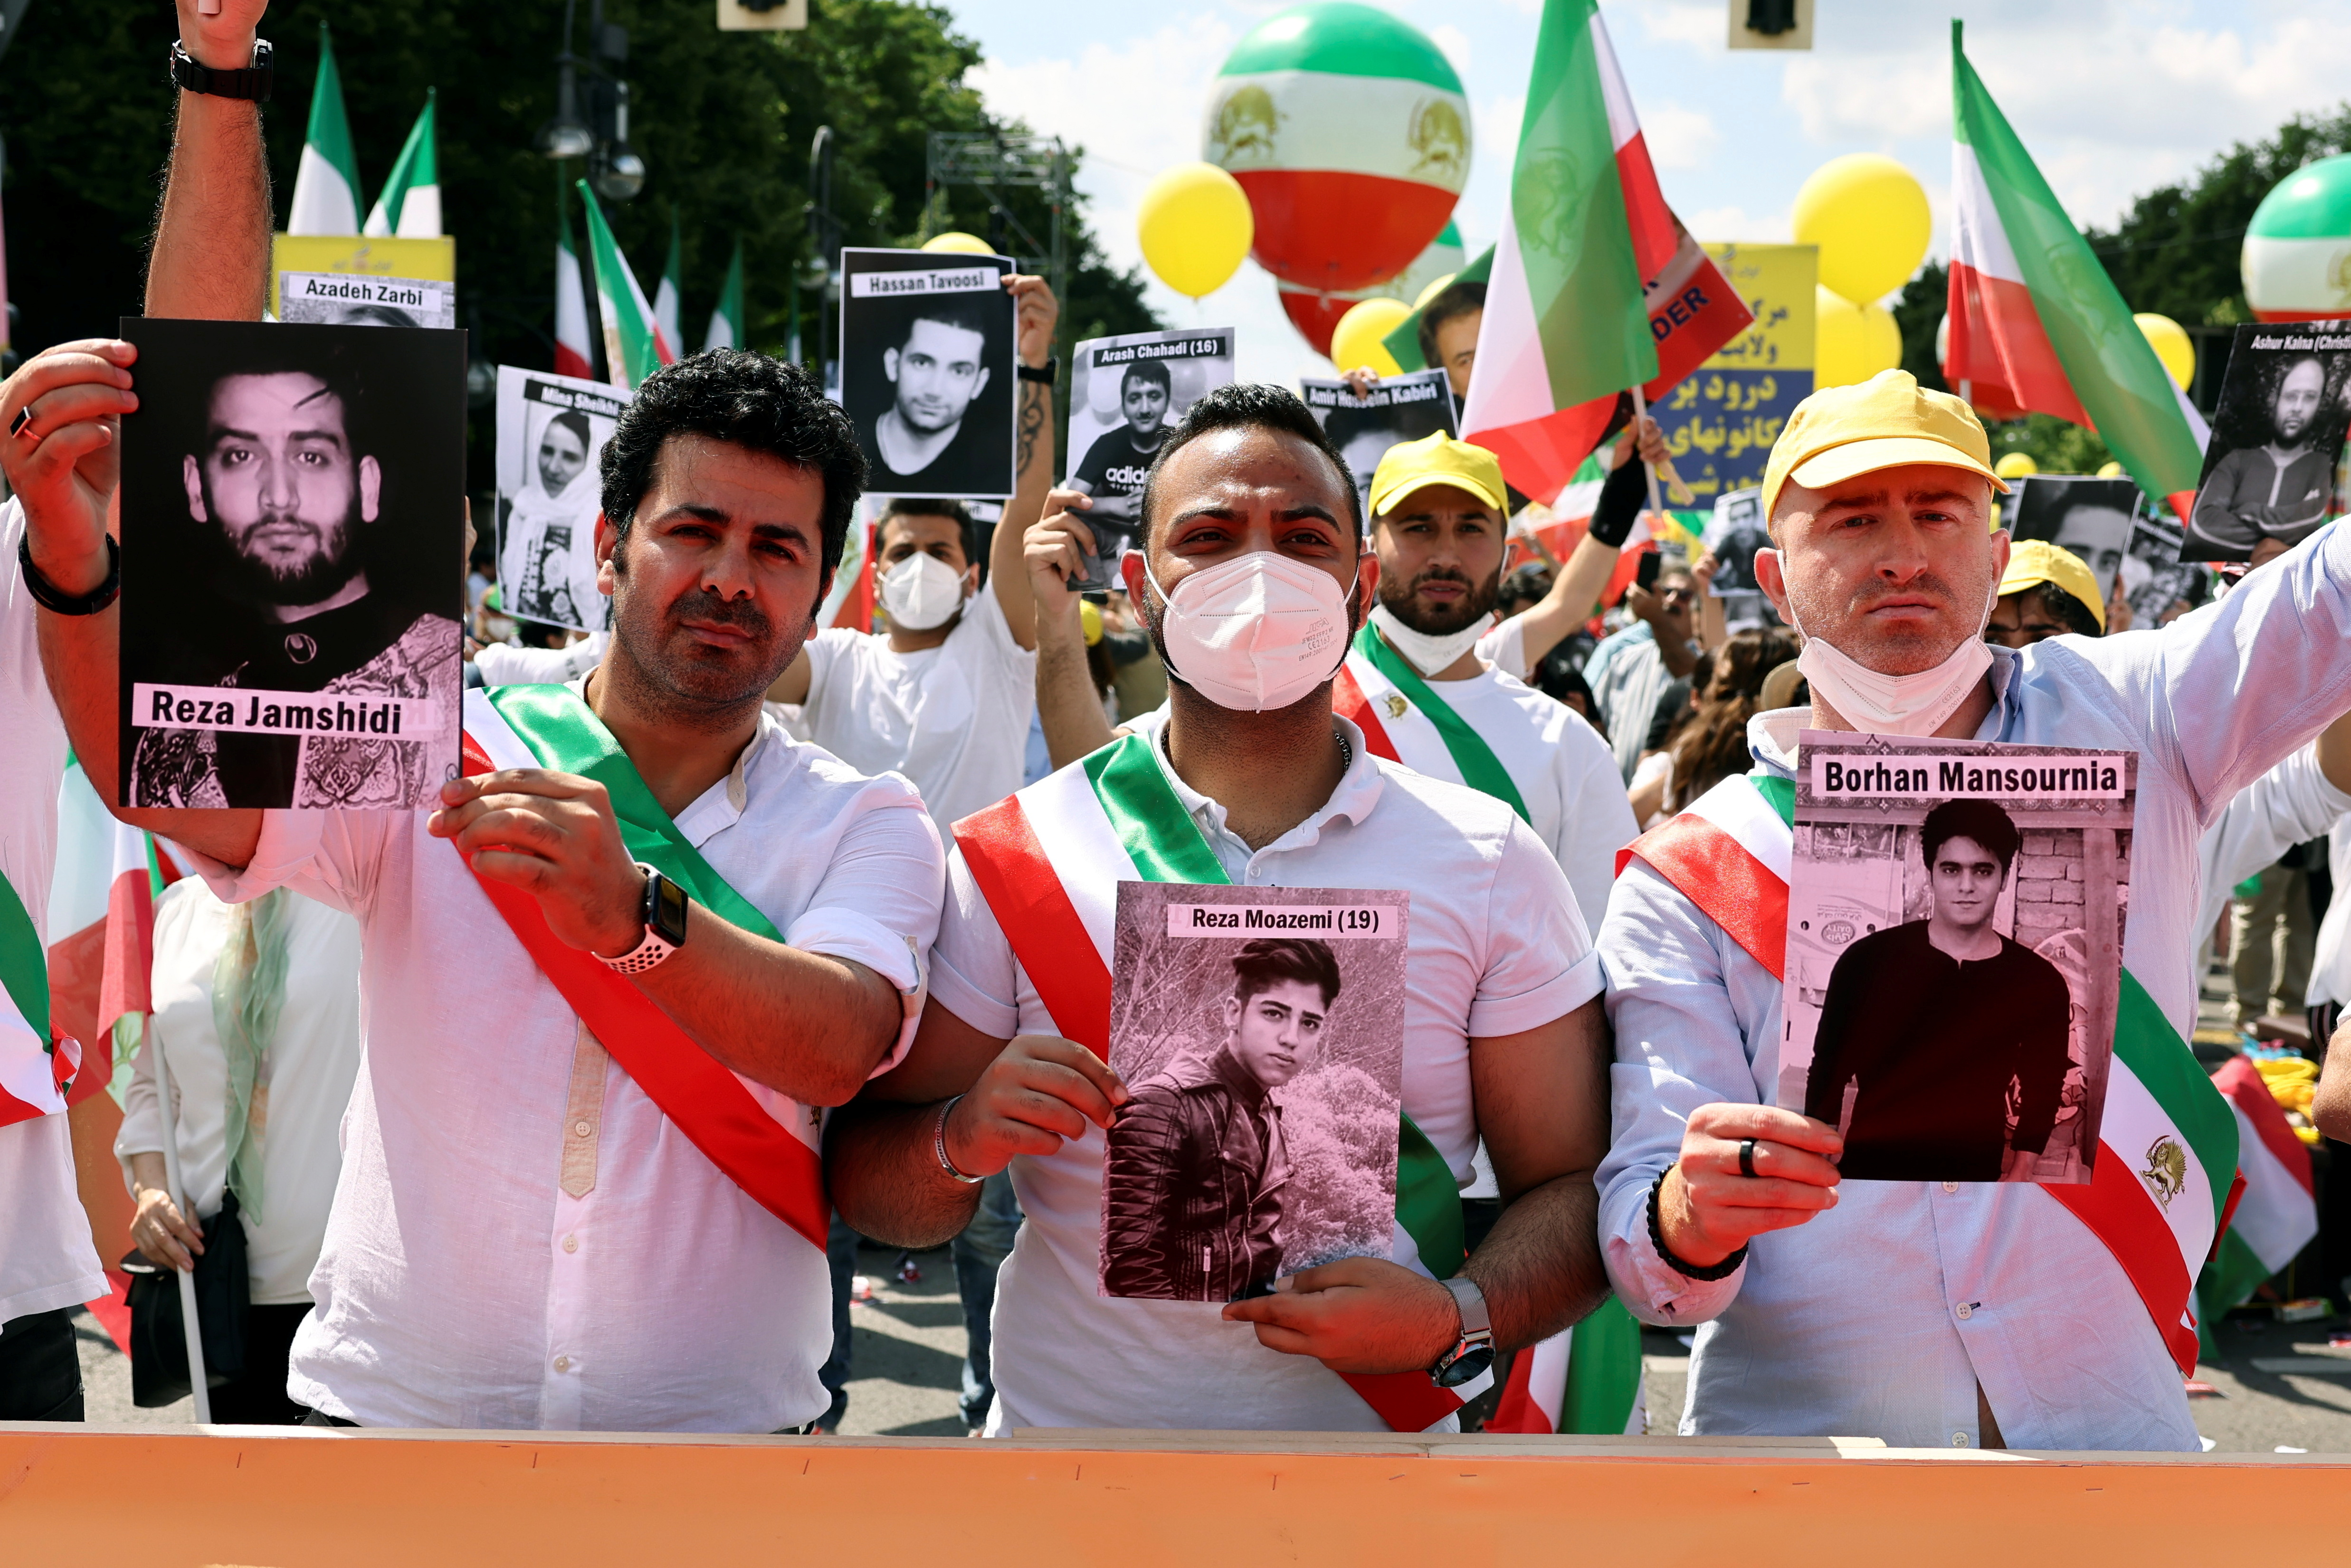 Supporters of the National Council of Resistance of Iran (NCRI) gather to protest against the government in Teheran and the use of the death penalty in Iran, in front of the Brandenburg Gate in Berlin, Germany, July 10, 2021. REUTERS/Christian Mang